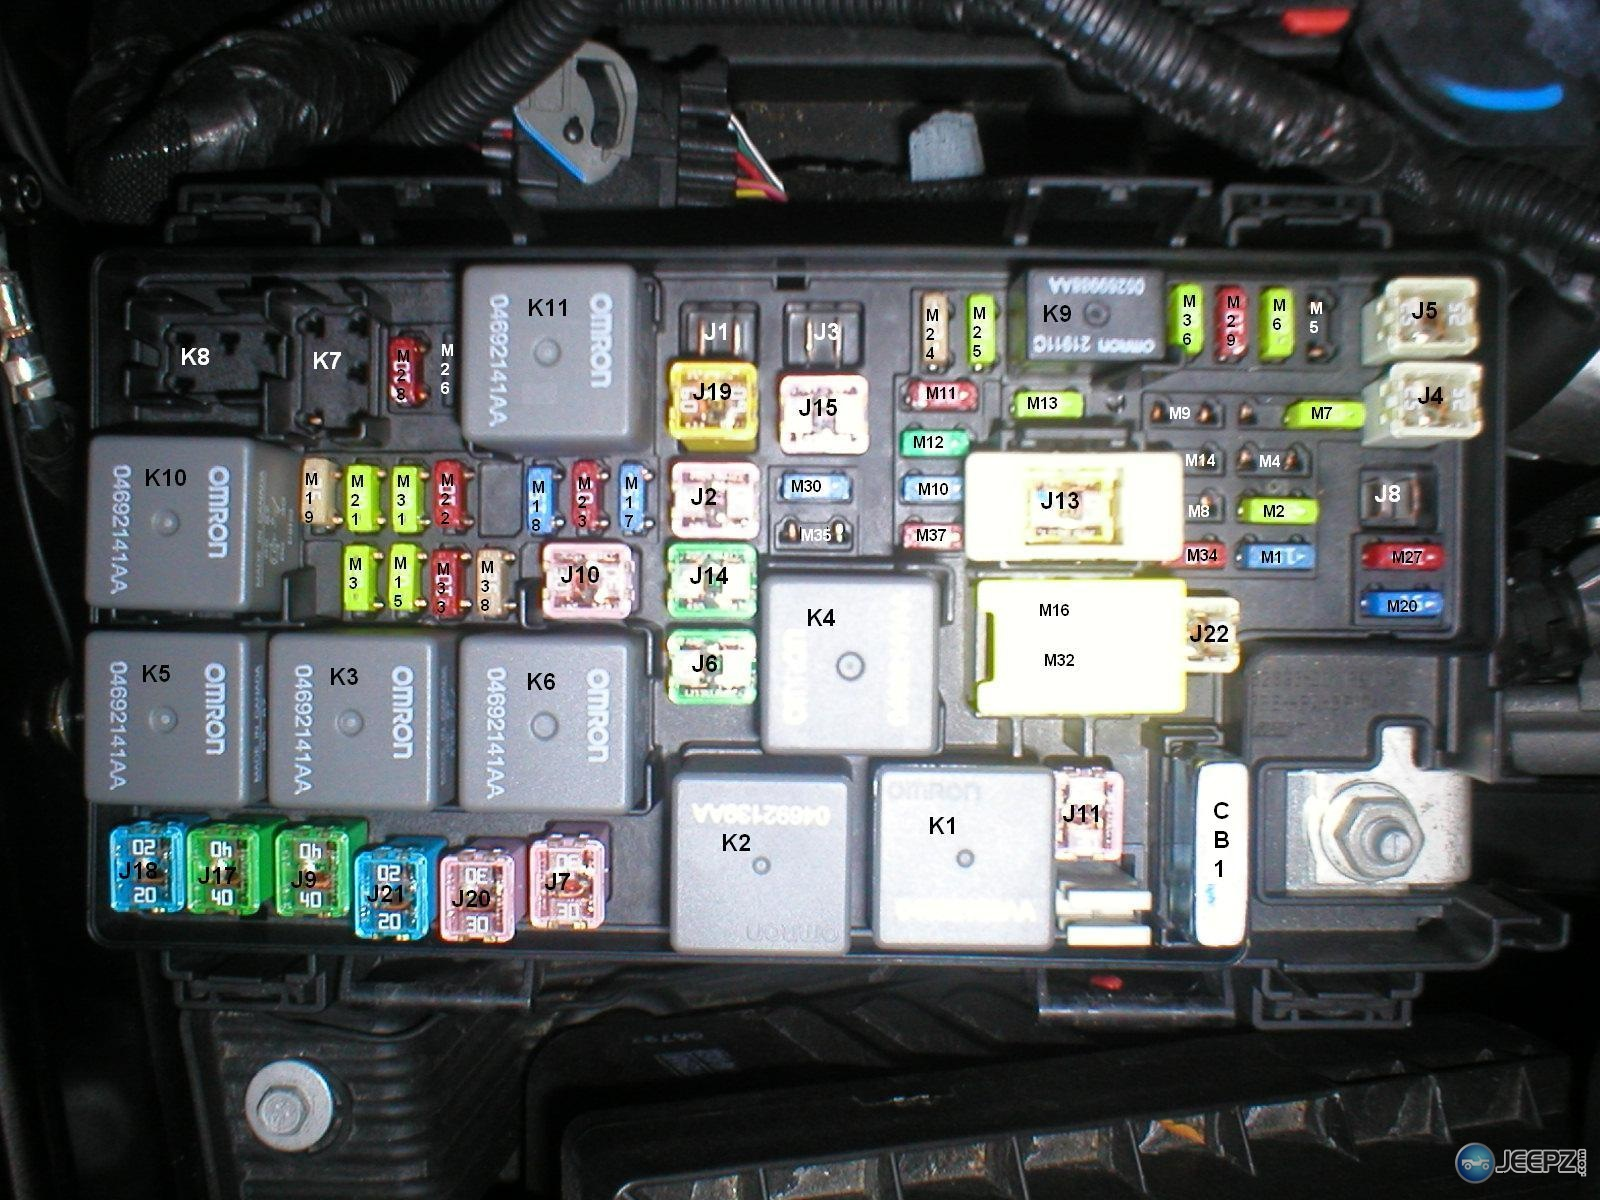 4488d1265060159 jeep jk 2009 fuse map layout diagram jkfusebox2009 jeep jk 2009 fuse map layout diagram 2008 jeep commander fuse box at creativeand.co